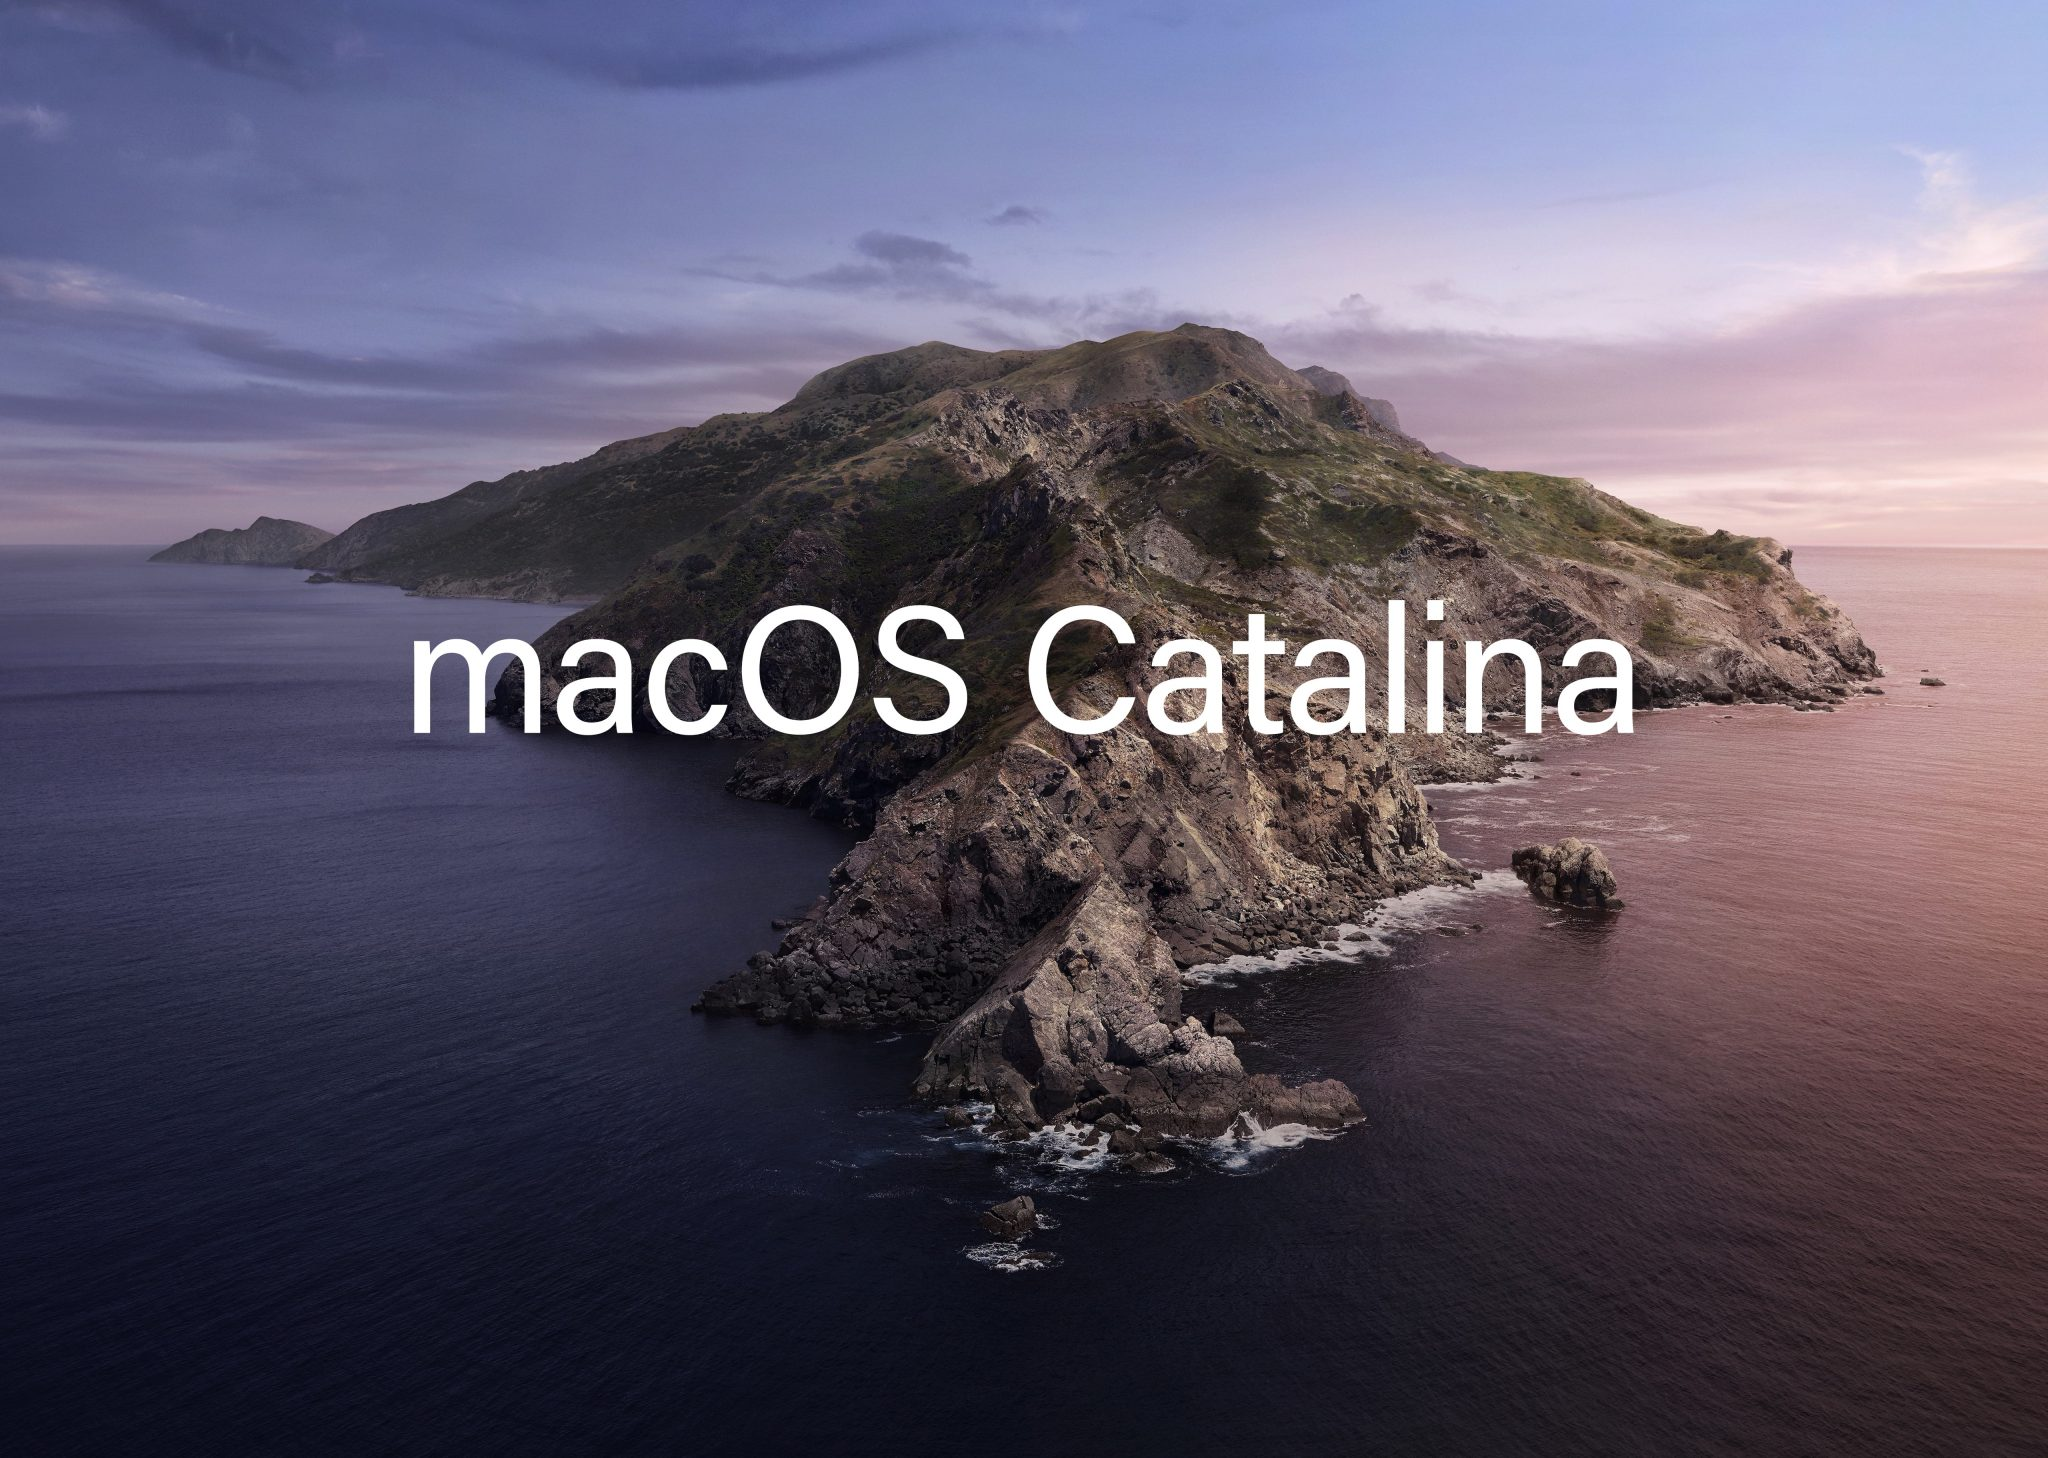 Download macOS Catalina VMware and VirtualBox Image – Latest Version